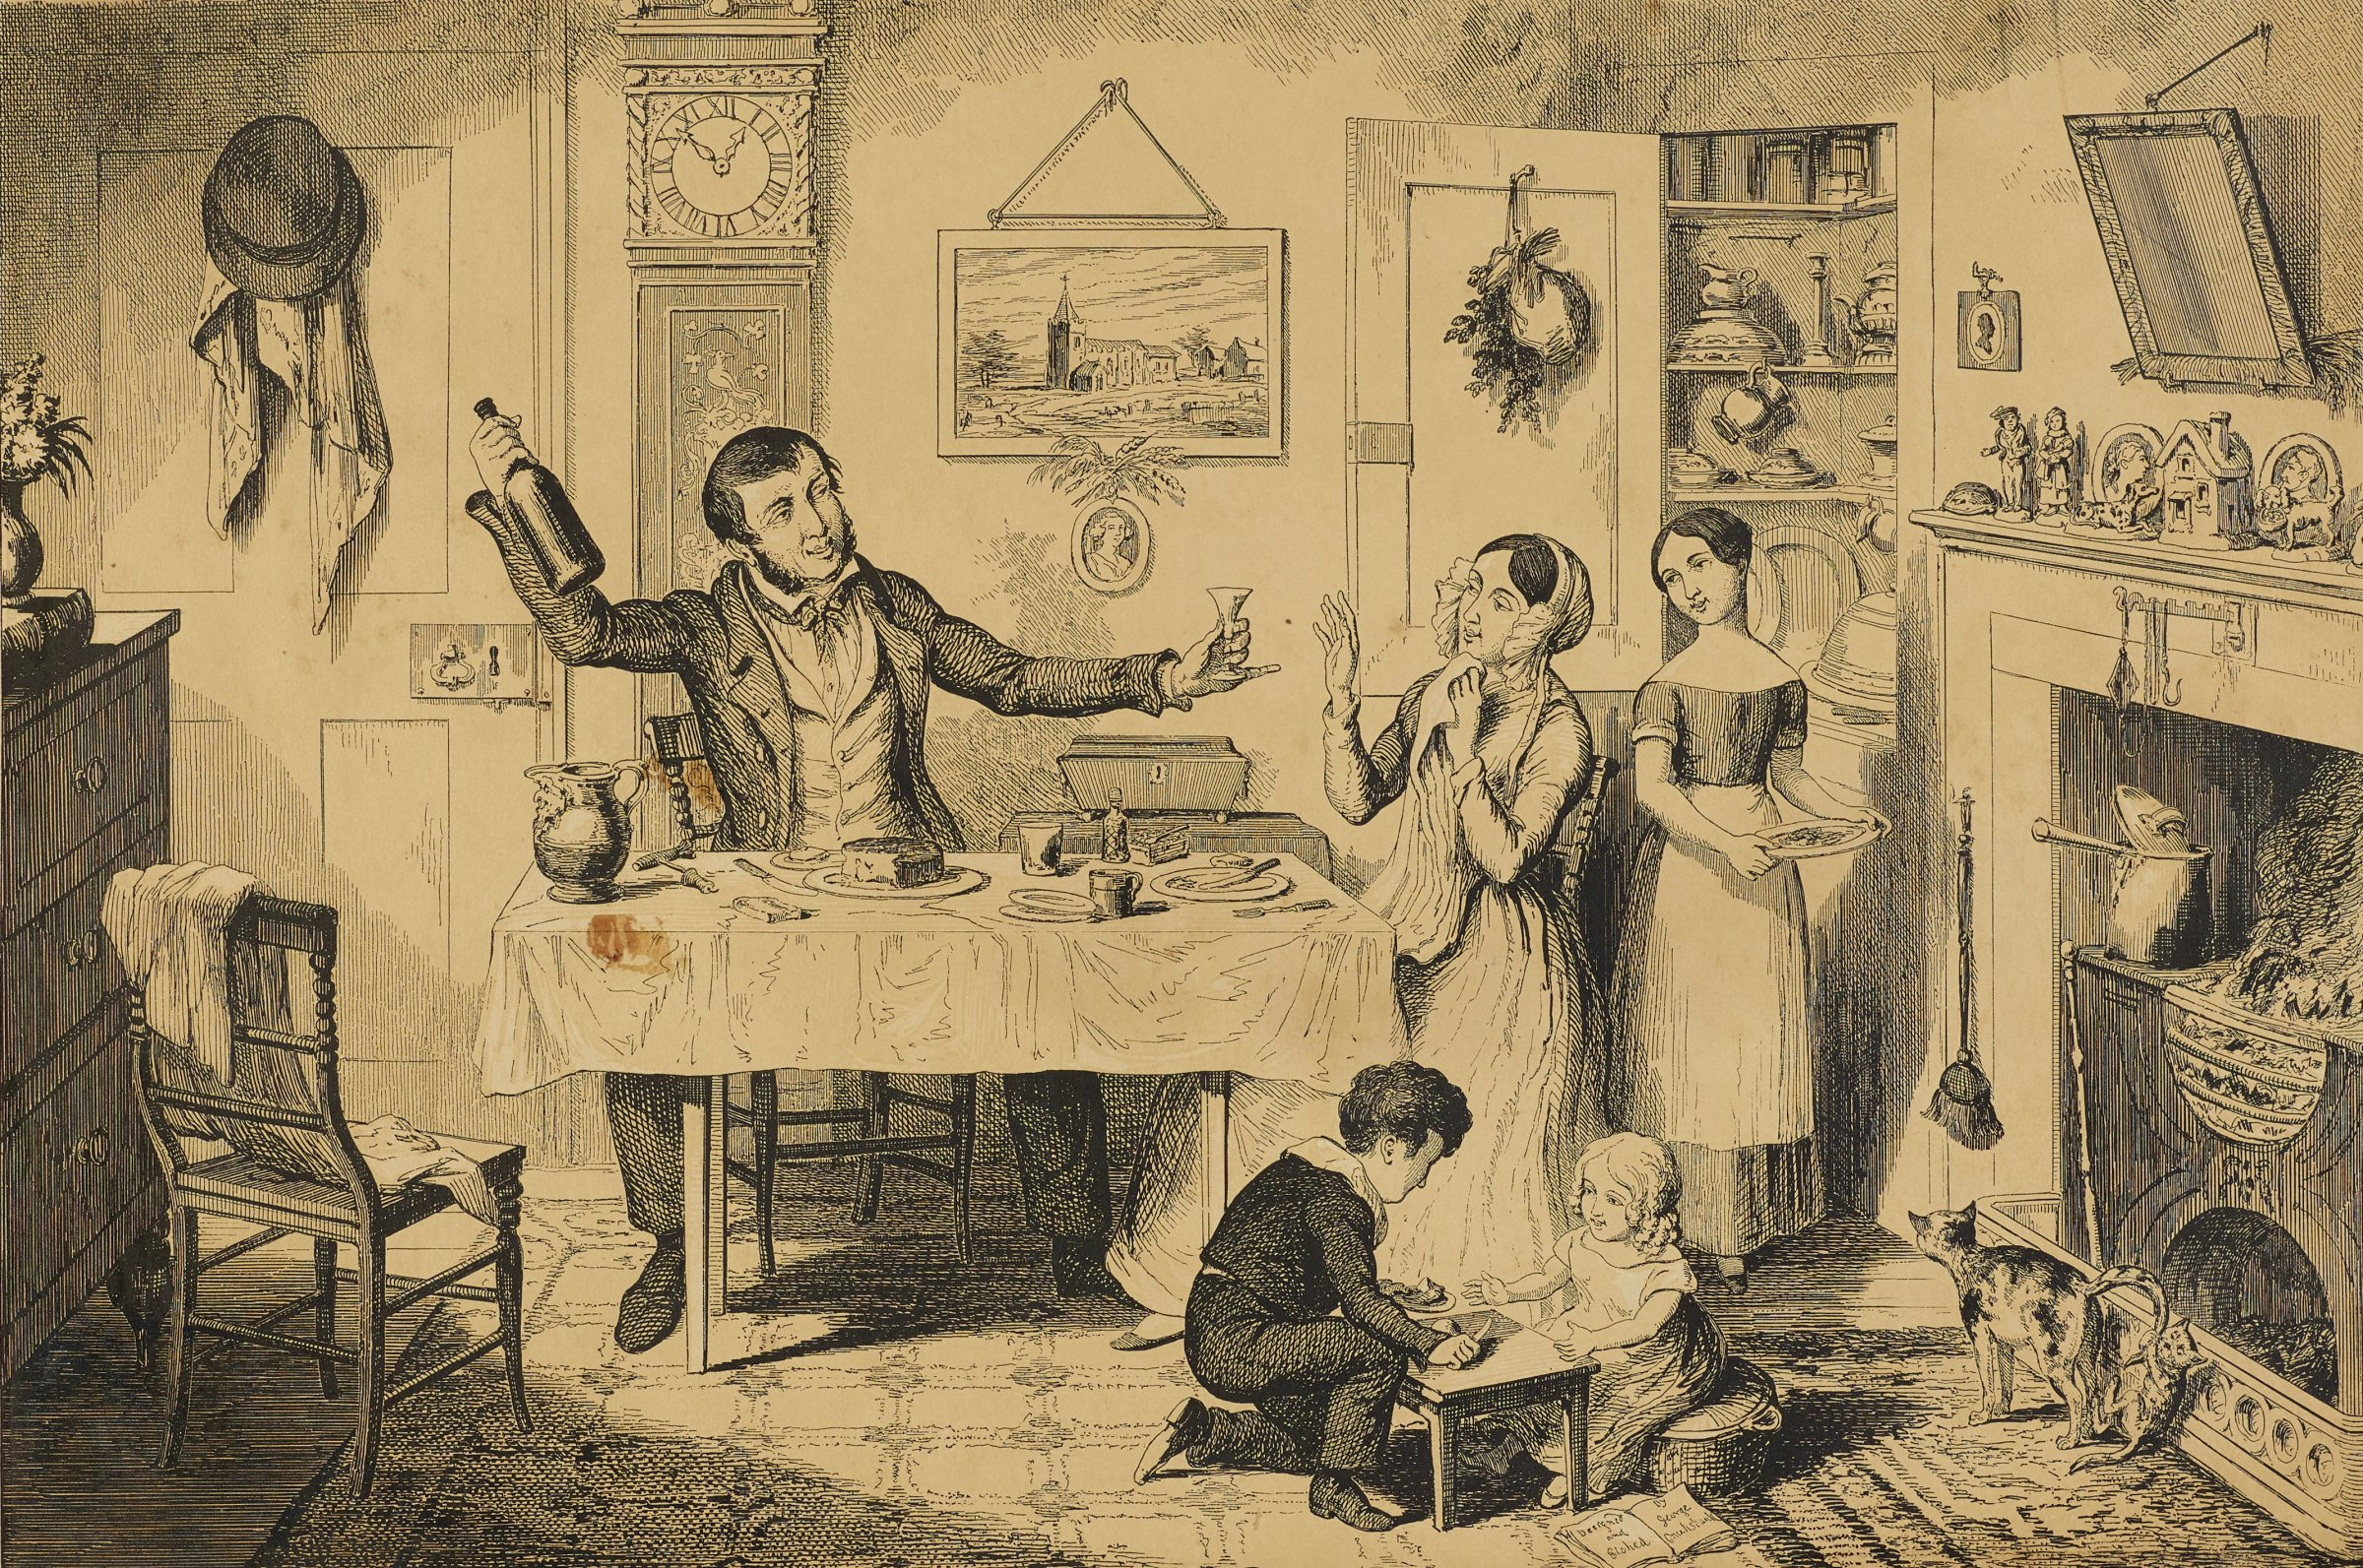 A family is seen in an interior. The man sits at a table and holds a bottle up as he hands the woman a wine glass.